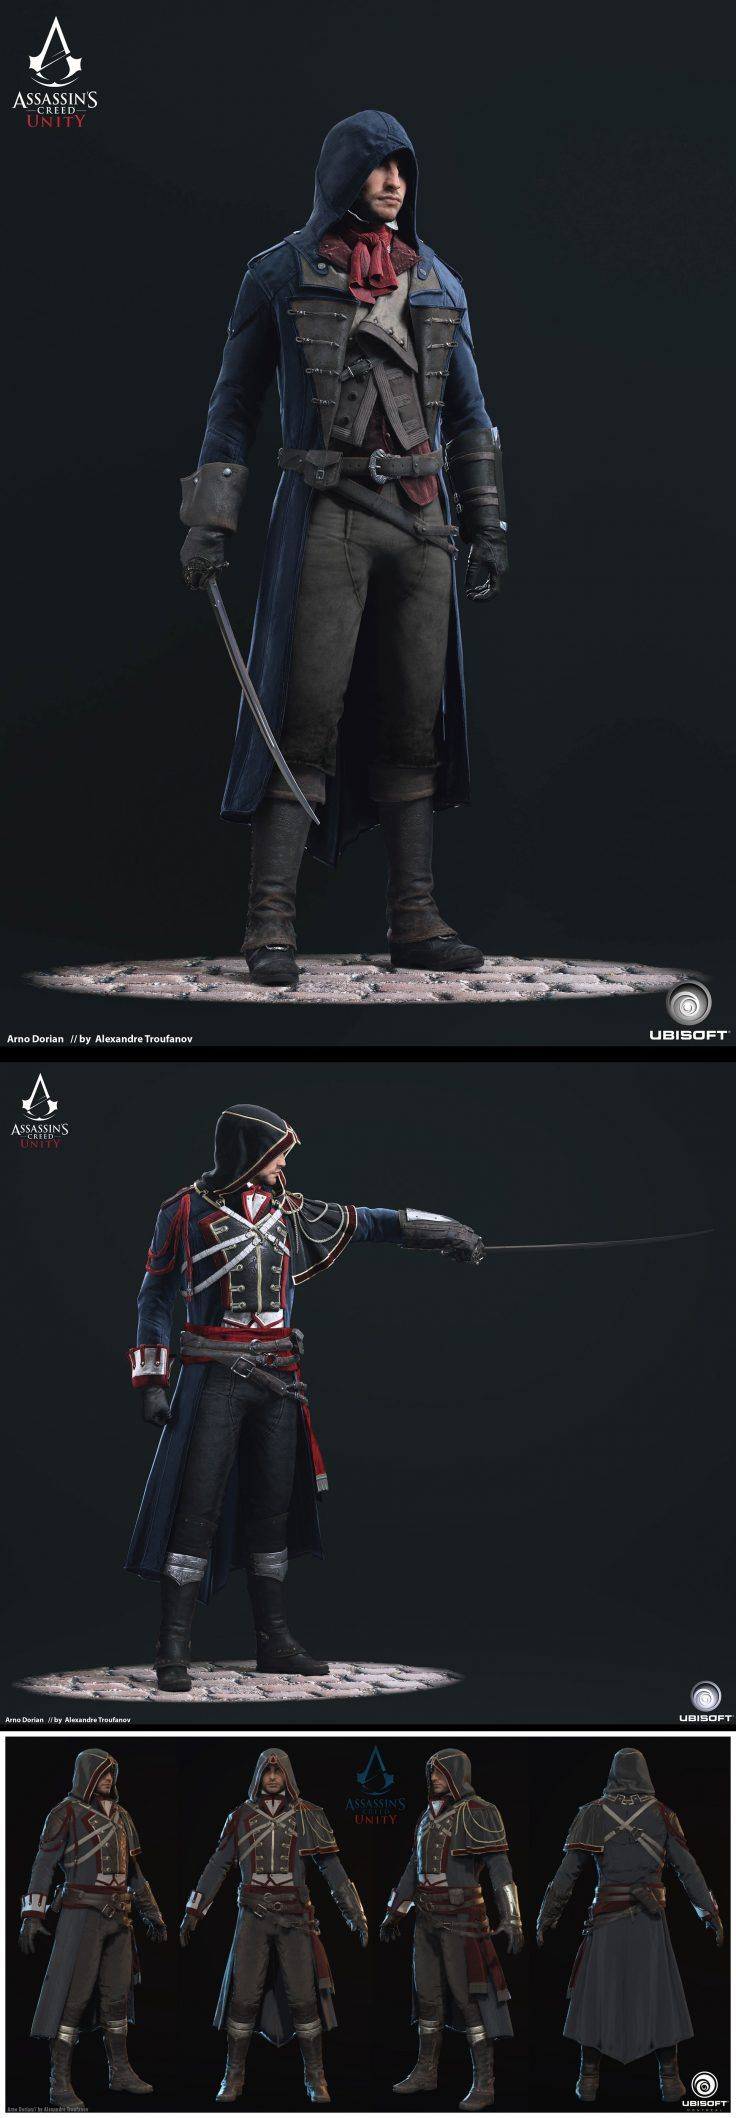 Assassins Creed Unity by Alexandre Troufanov